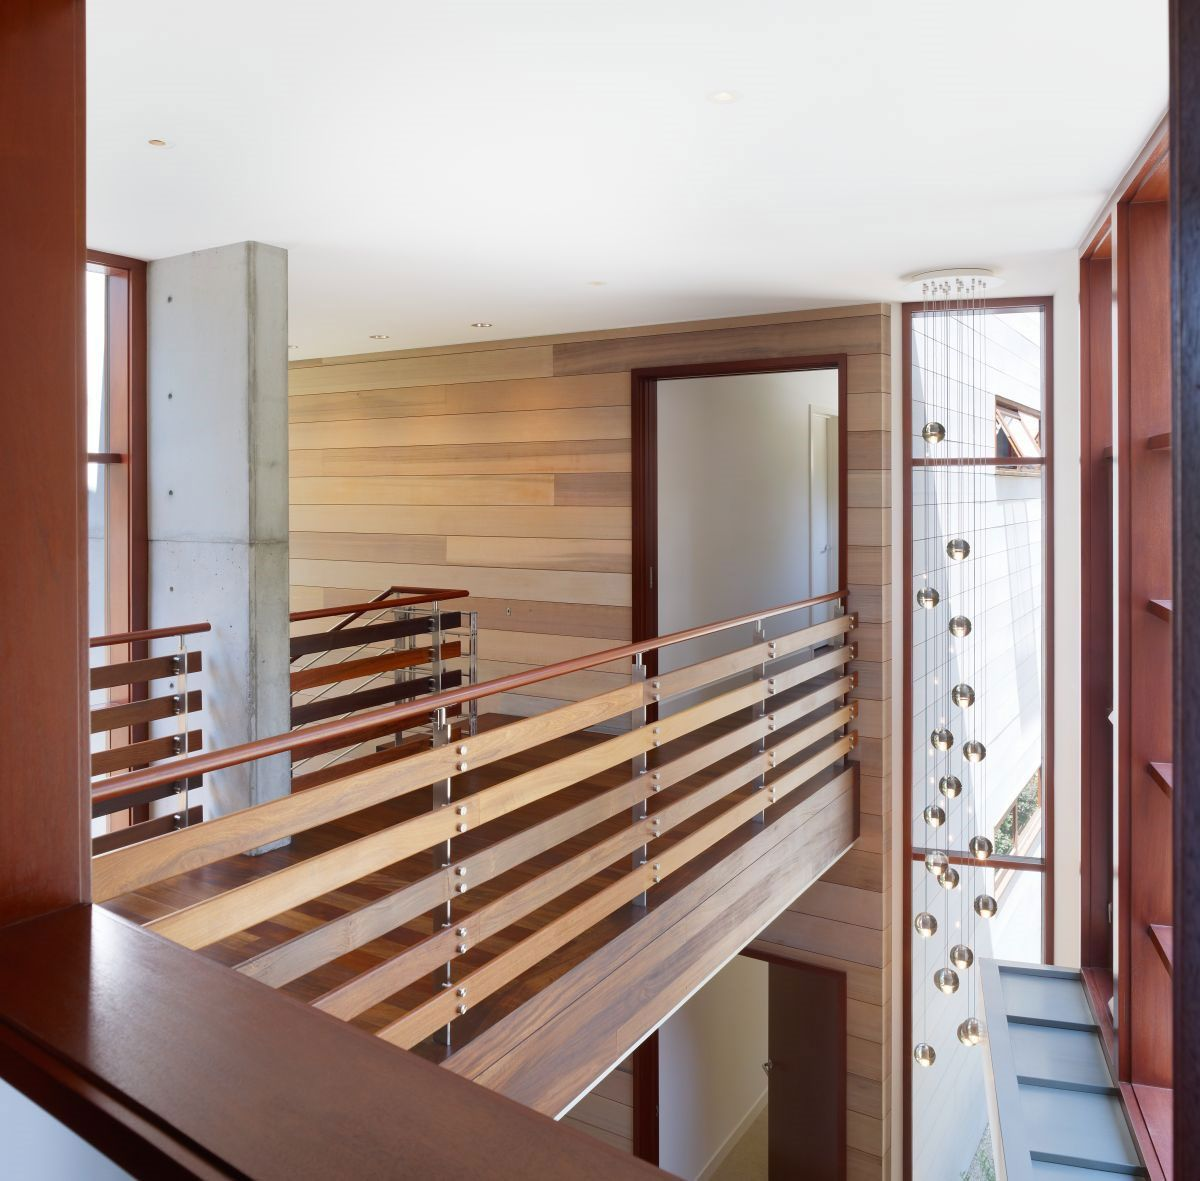 Attrayant Great Wooden Handrails Ideas : Indoor Bridge And Railings Design Using Wood